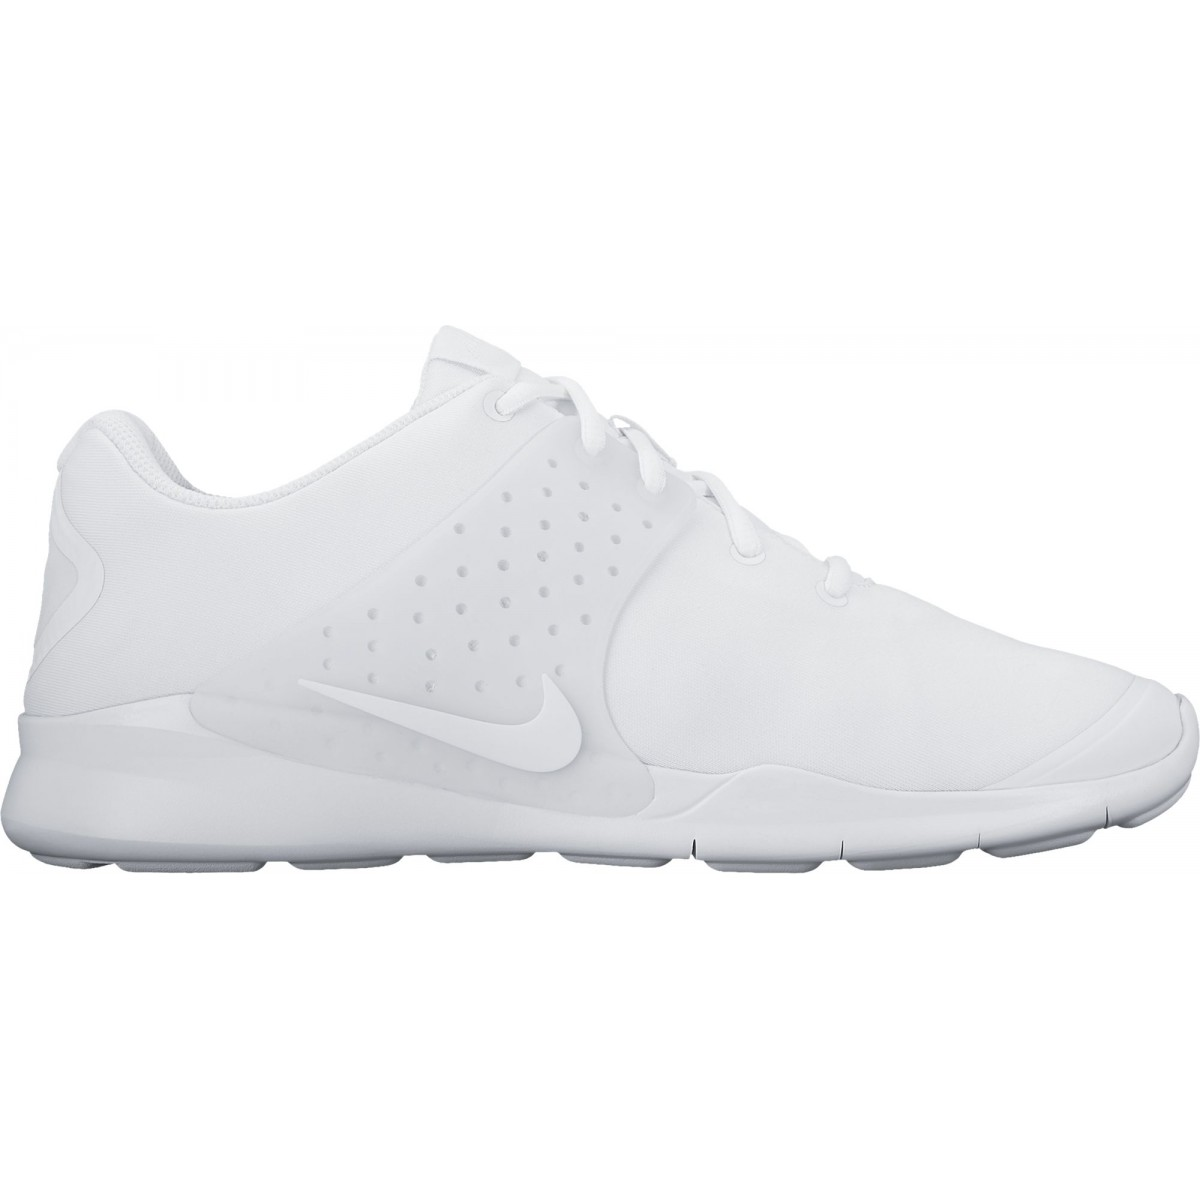 Womens High Gym Shoes